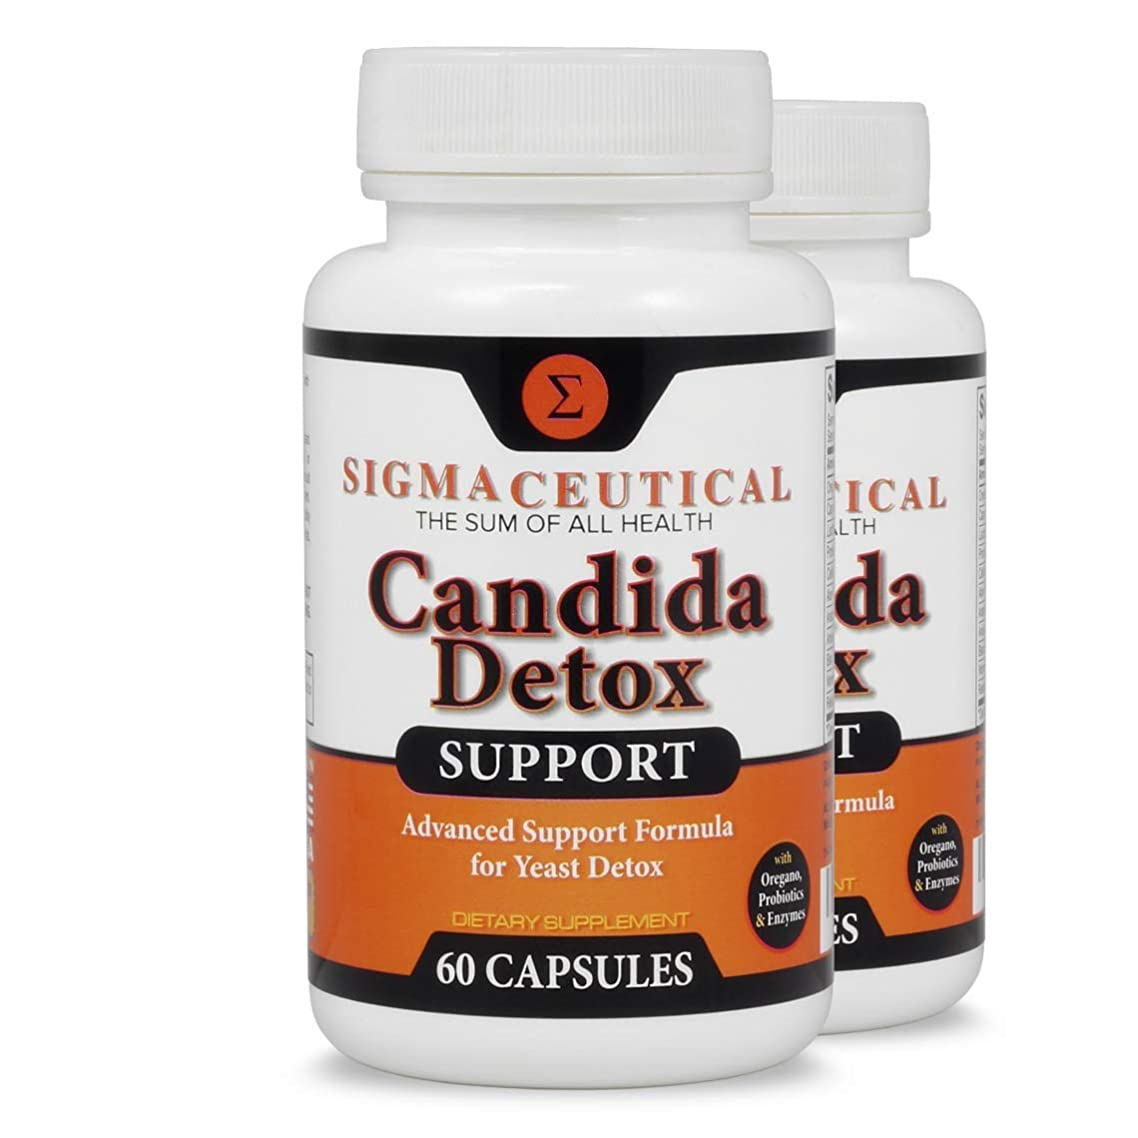 2 Pack of Candida Cleanse - Yeast Infection Treatment - Oral Thrush Treatment - Organic Probiotic Support - Ultimate Cleanser for Men and Women - Free Candida Diet eBook - 60 Capsules Each